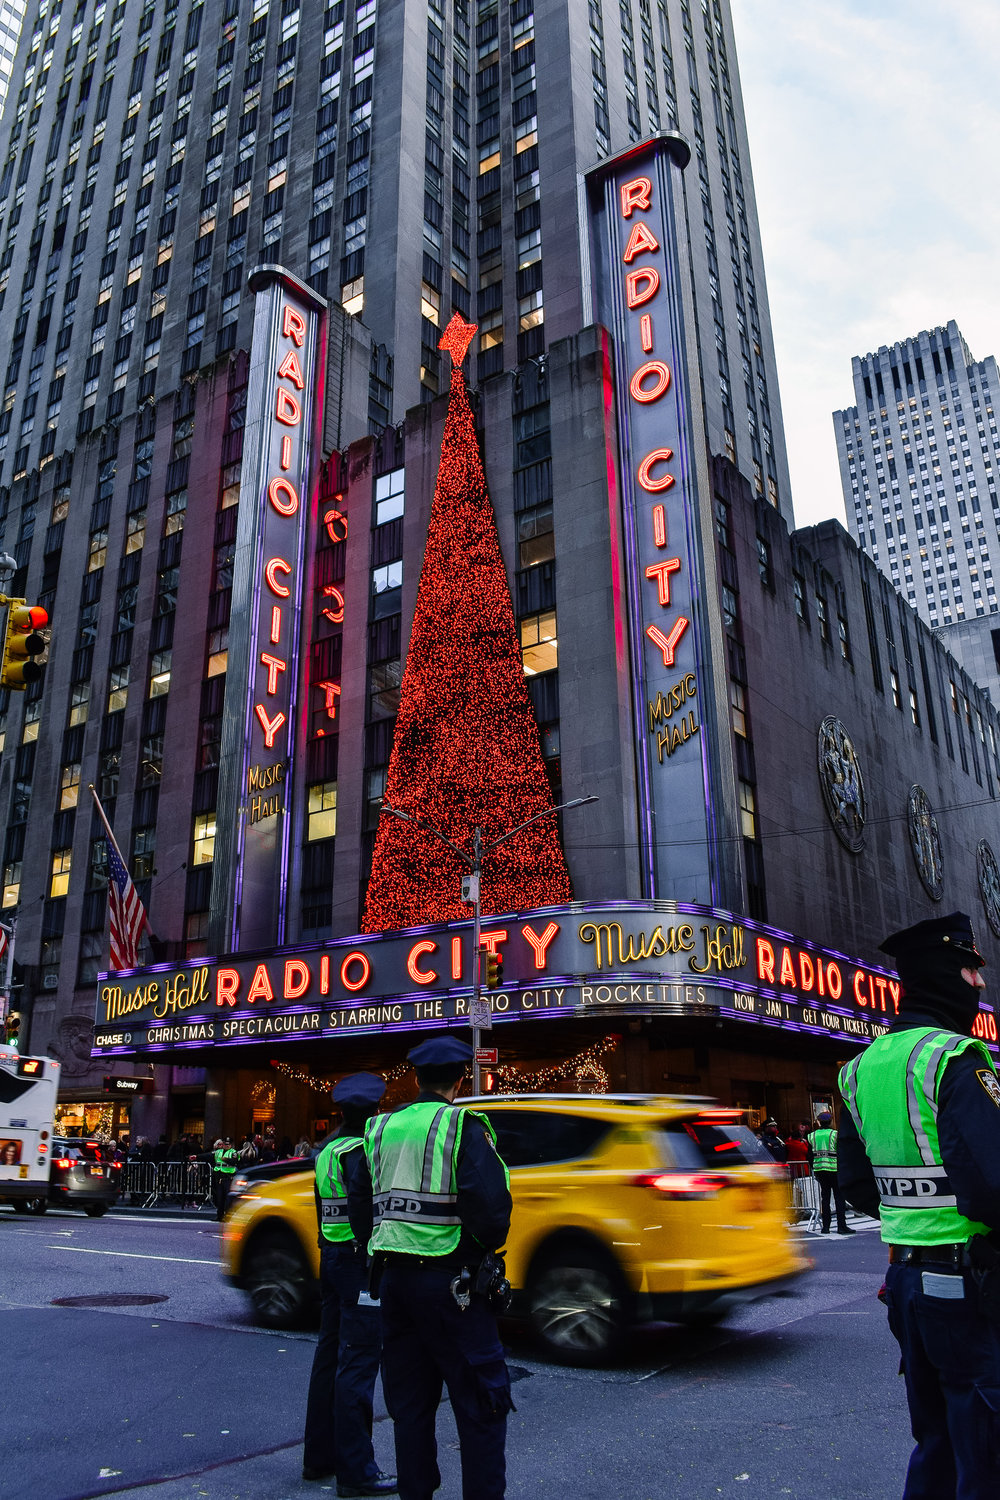 Radio City New York City Christmas lights